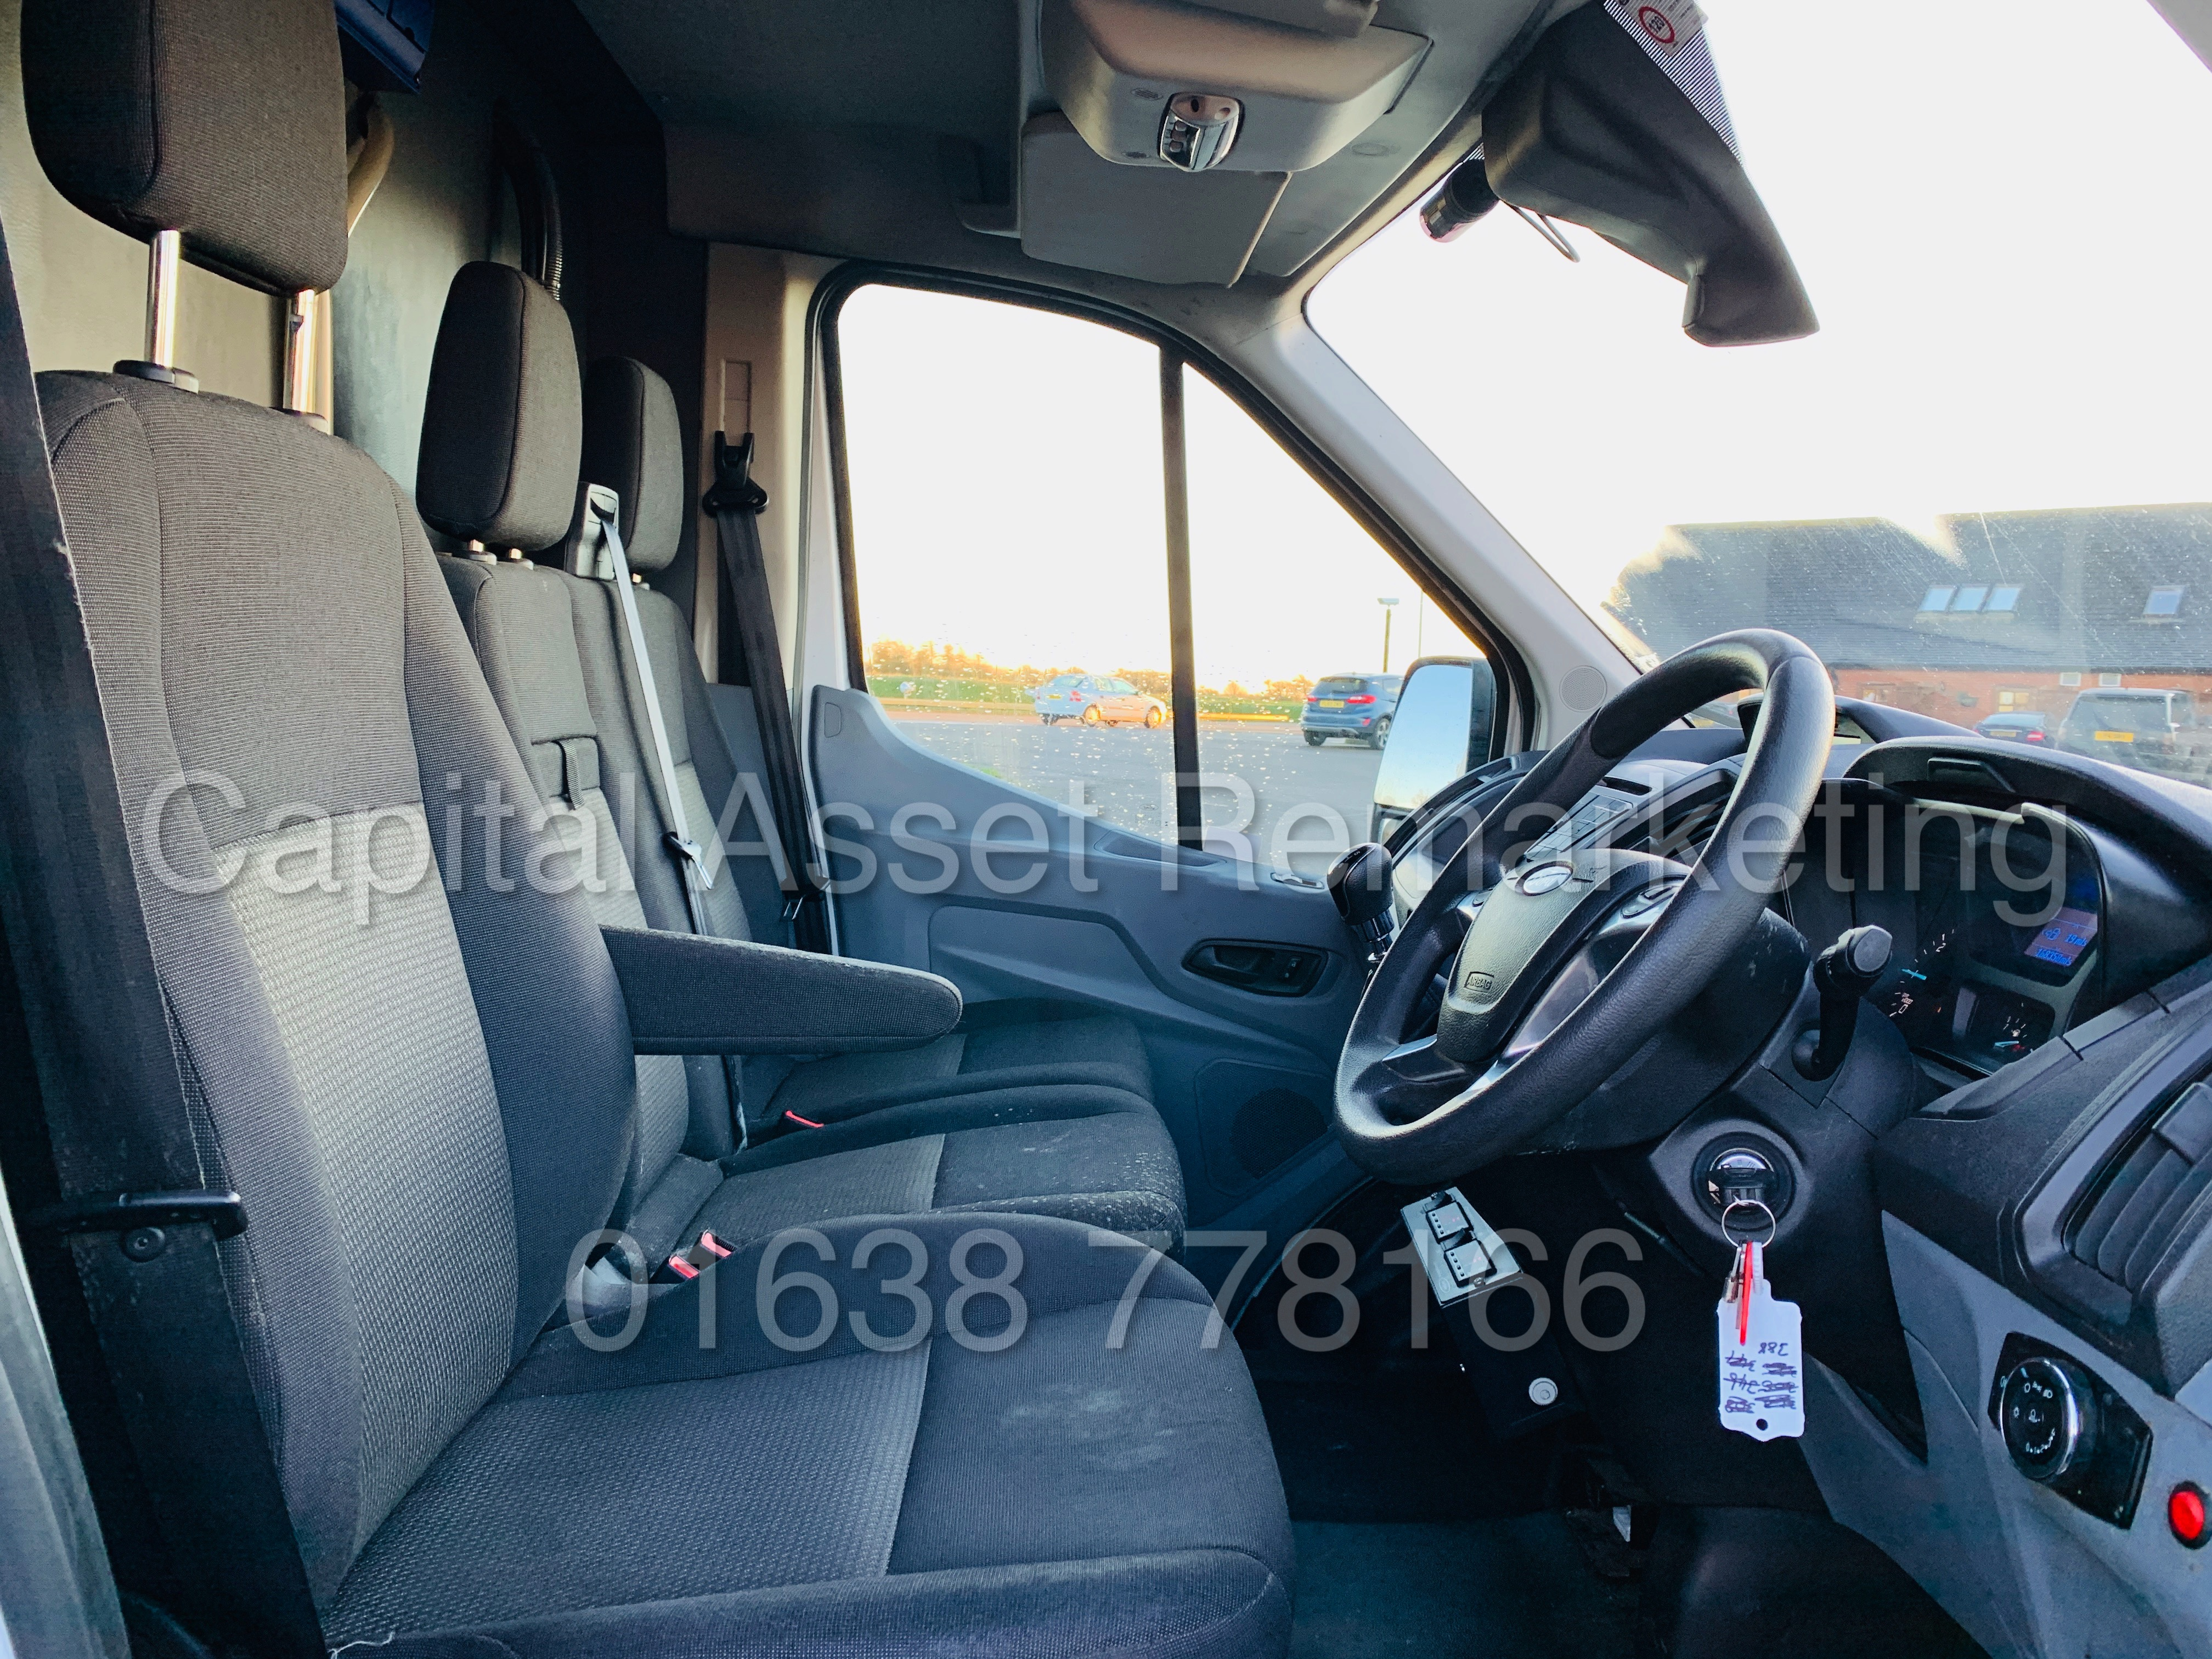 (On Sale) FORD TRANSIT T350 *LWB - REFRIGERATED VAN* (65 REG) '2.2 TDCI -125 BHP- 6 SPEED' (1 OWNER) - Image 27 of 43